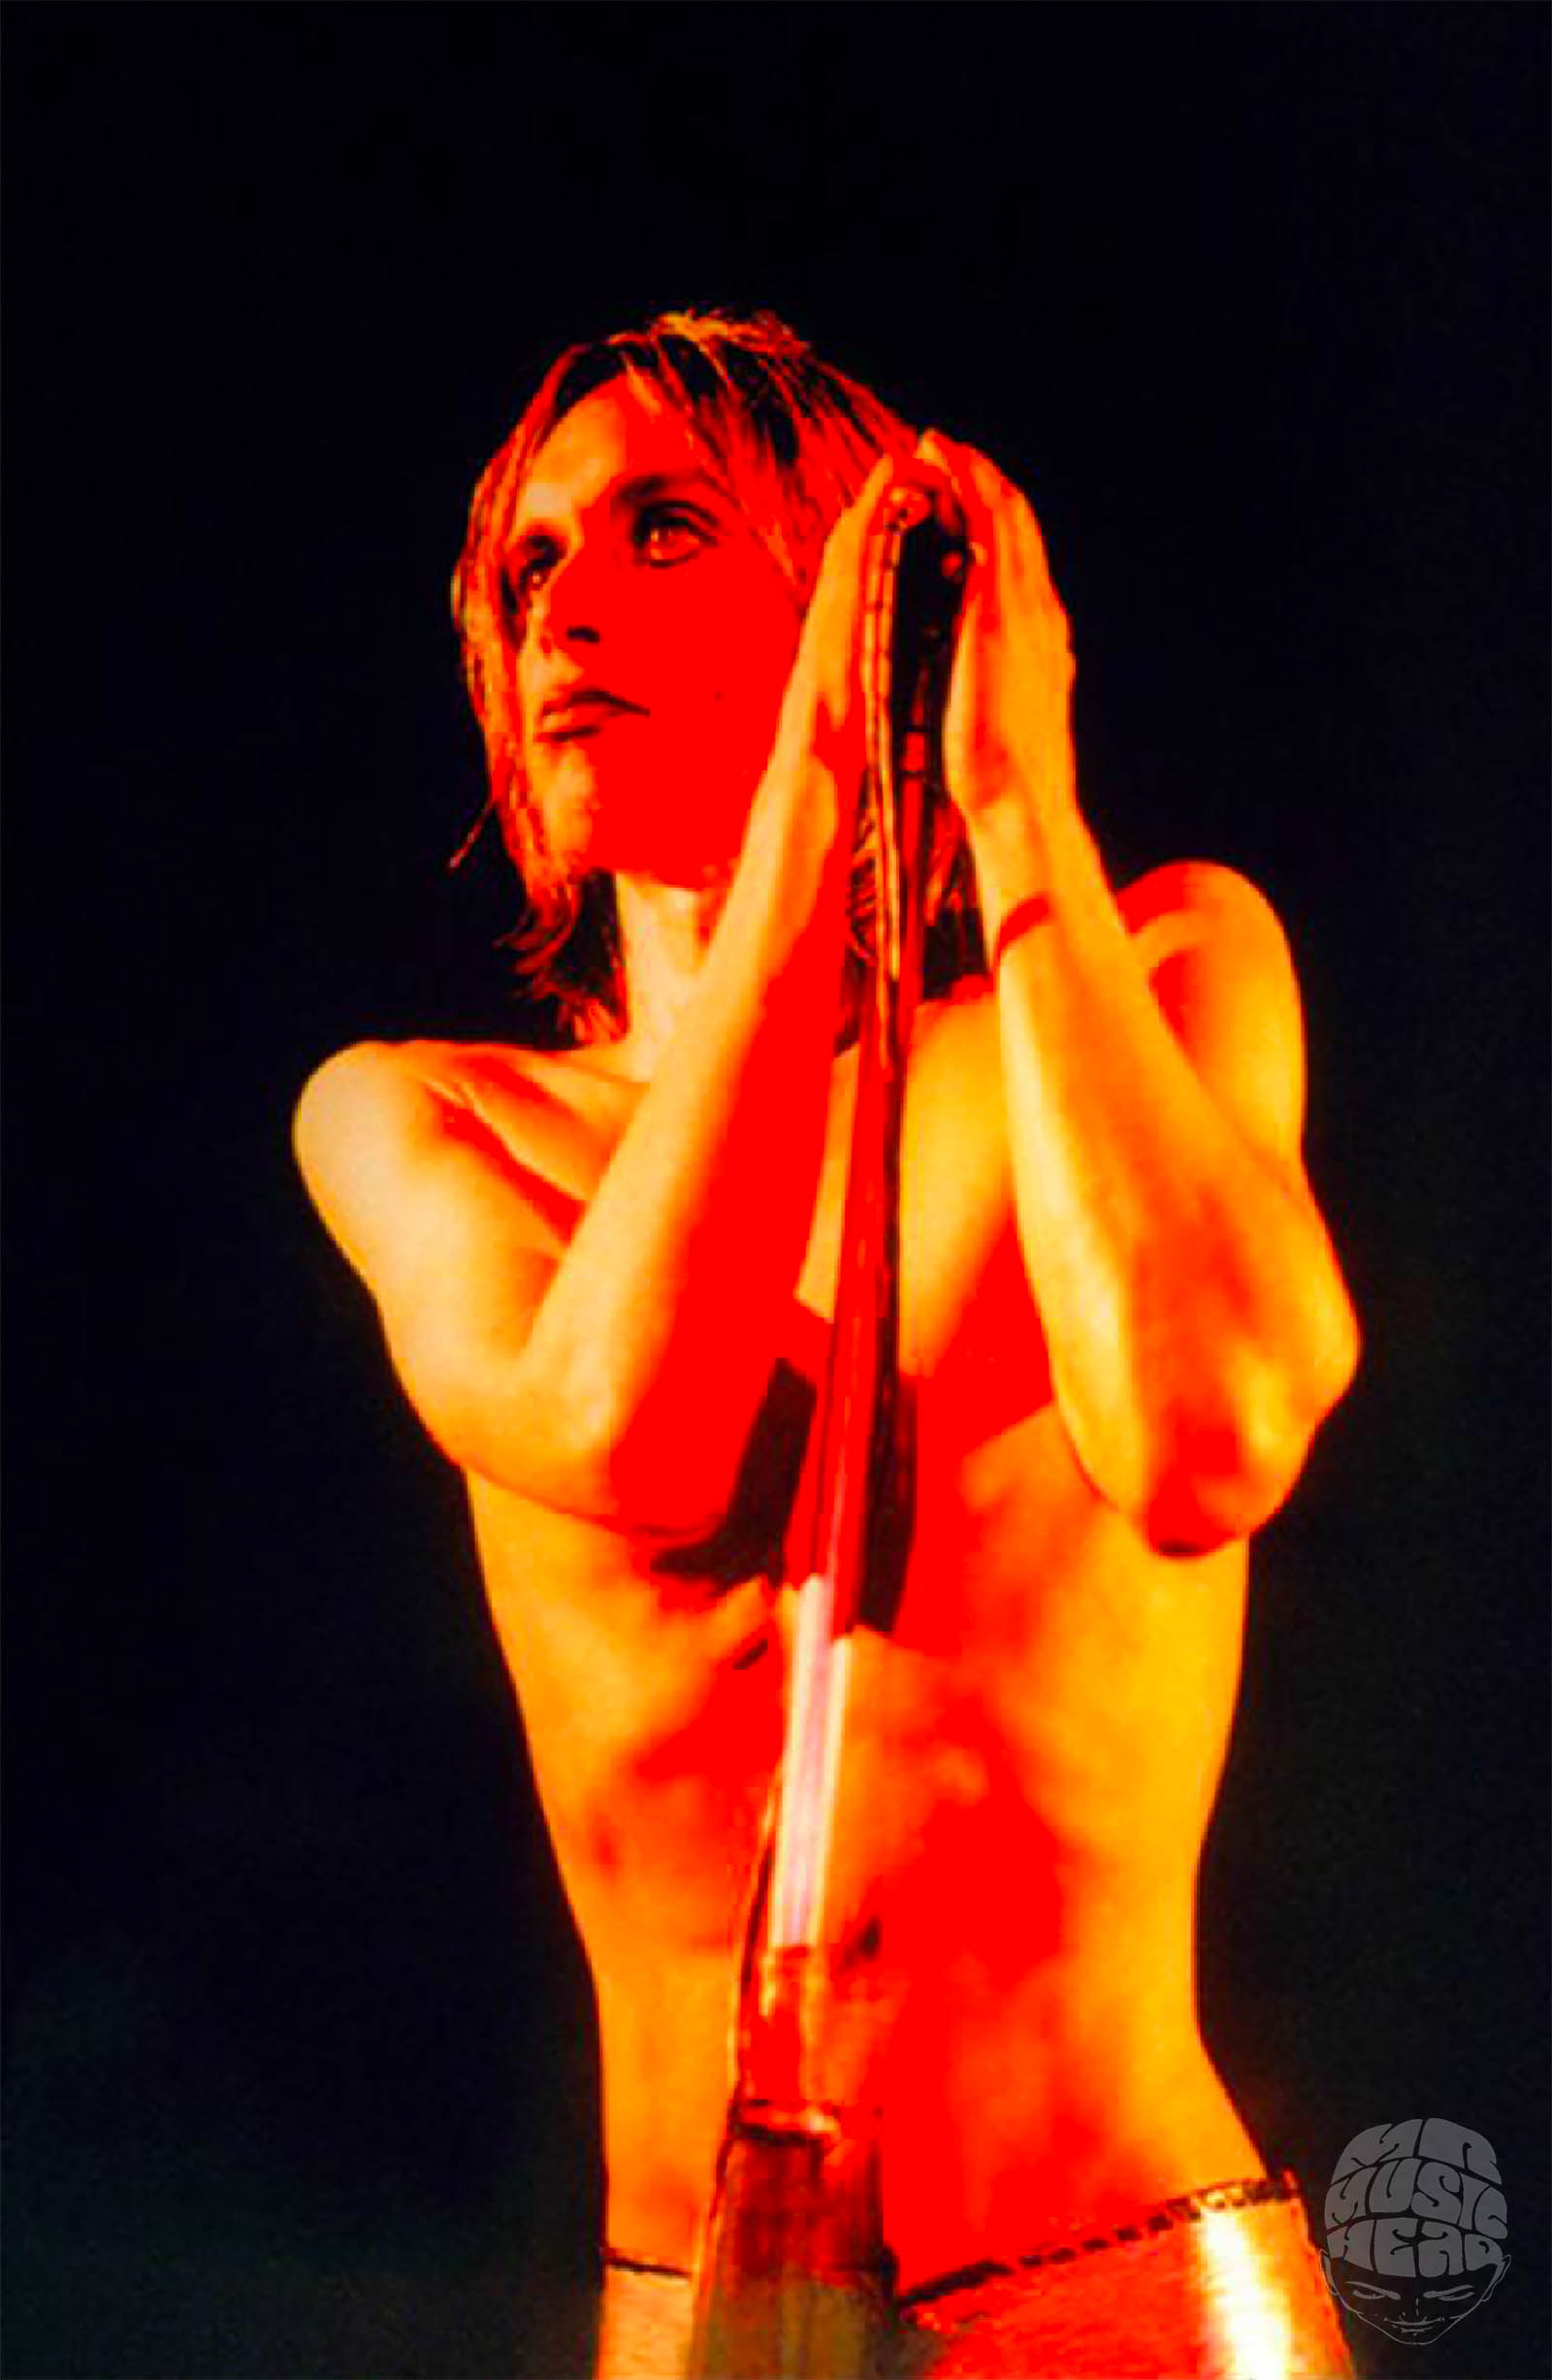 mick rock_iggy pop.jpg